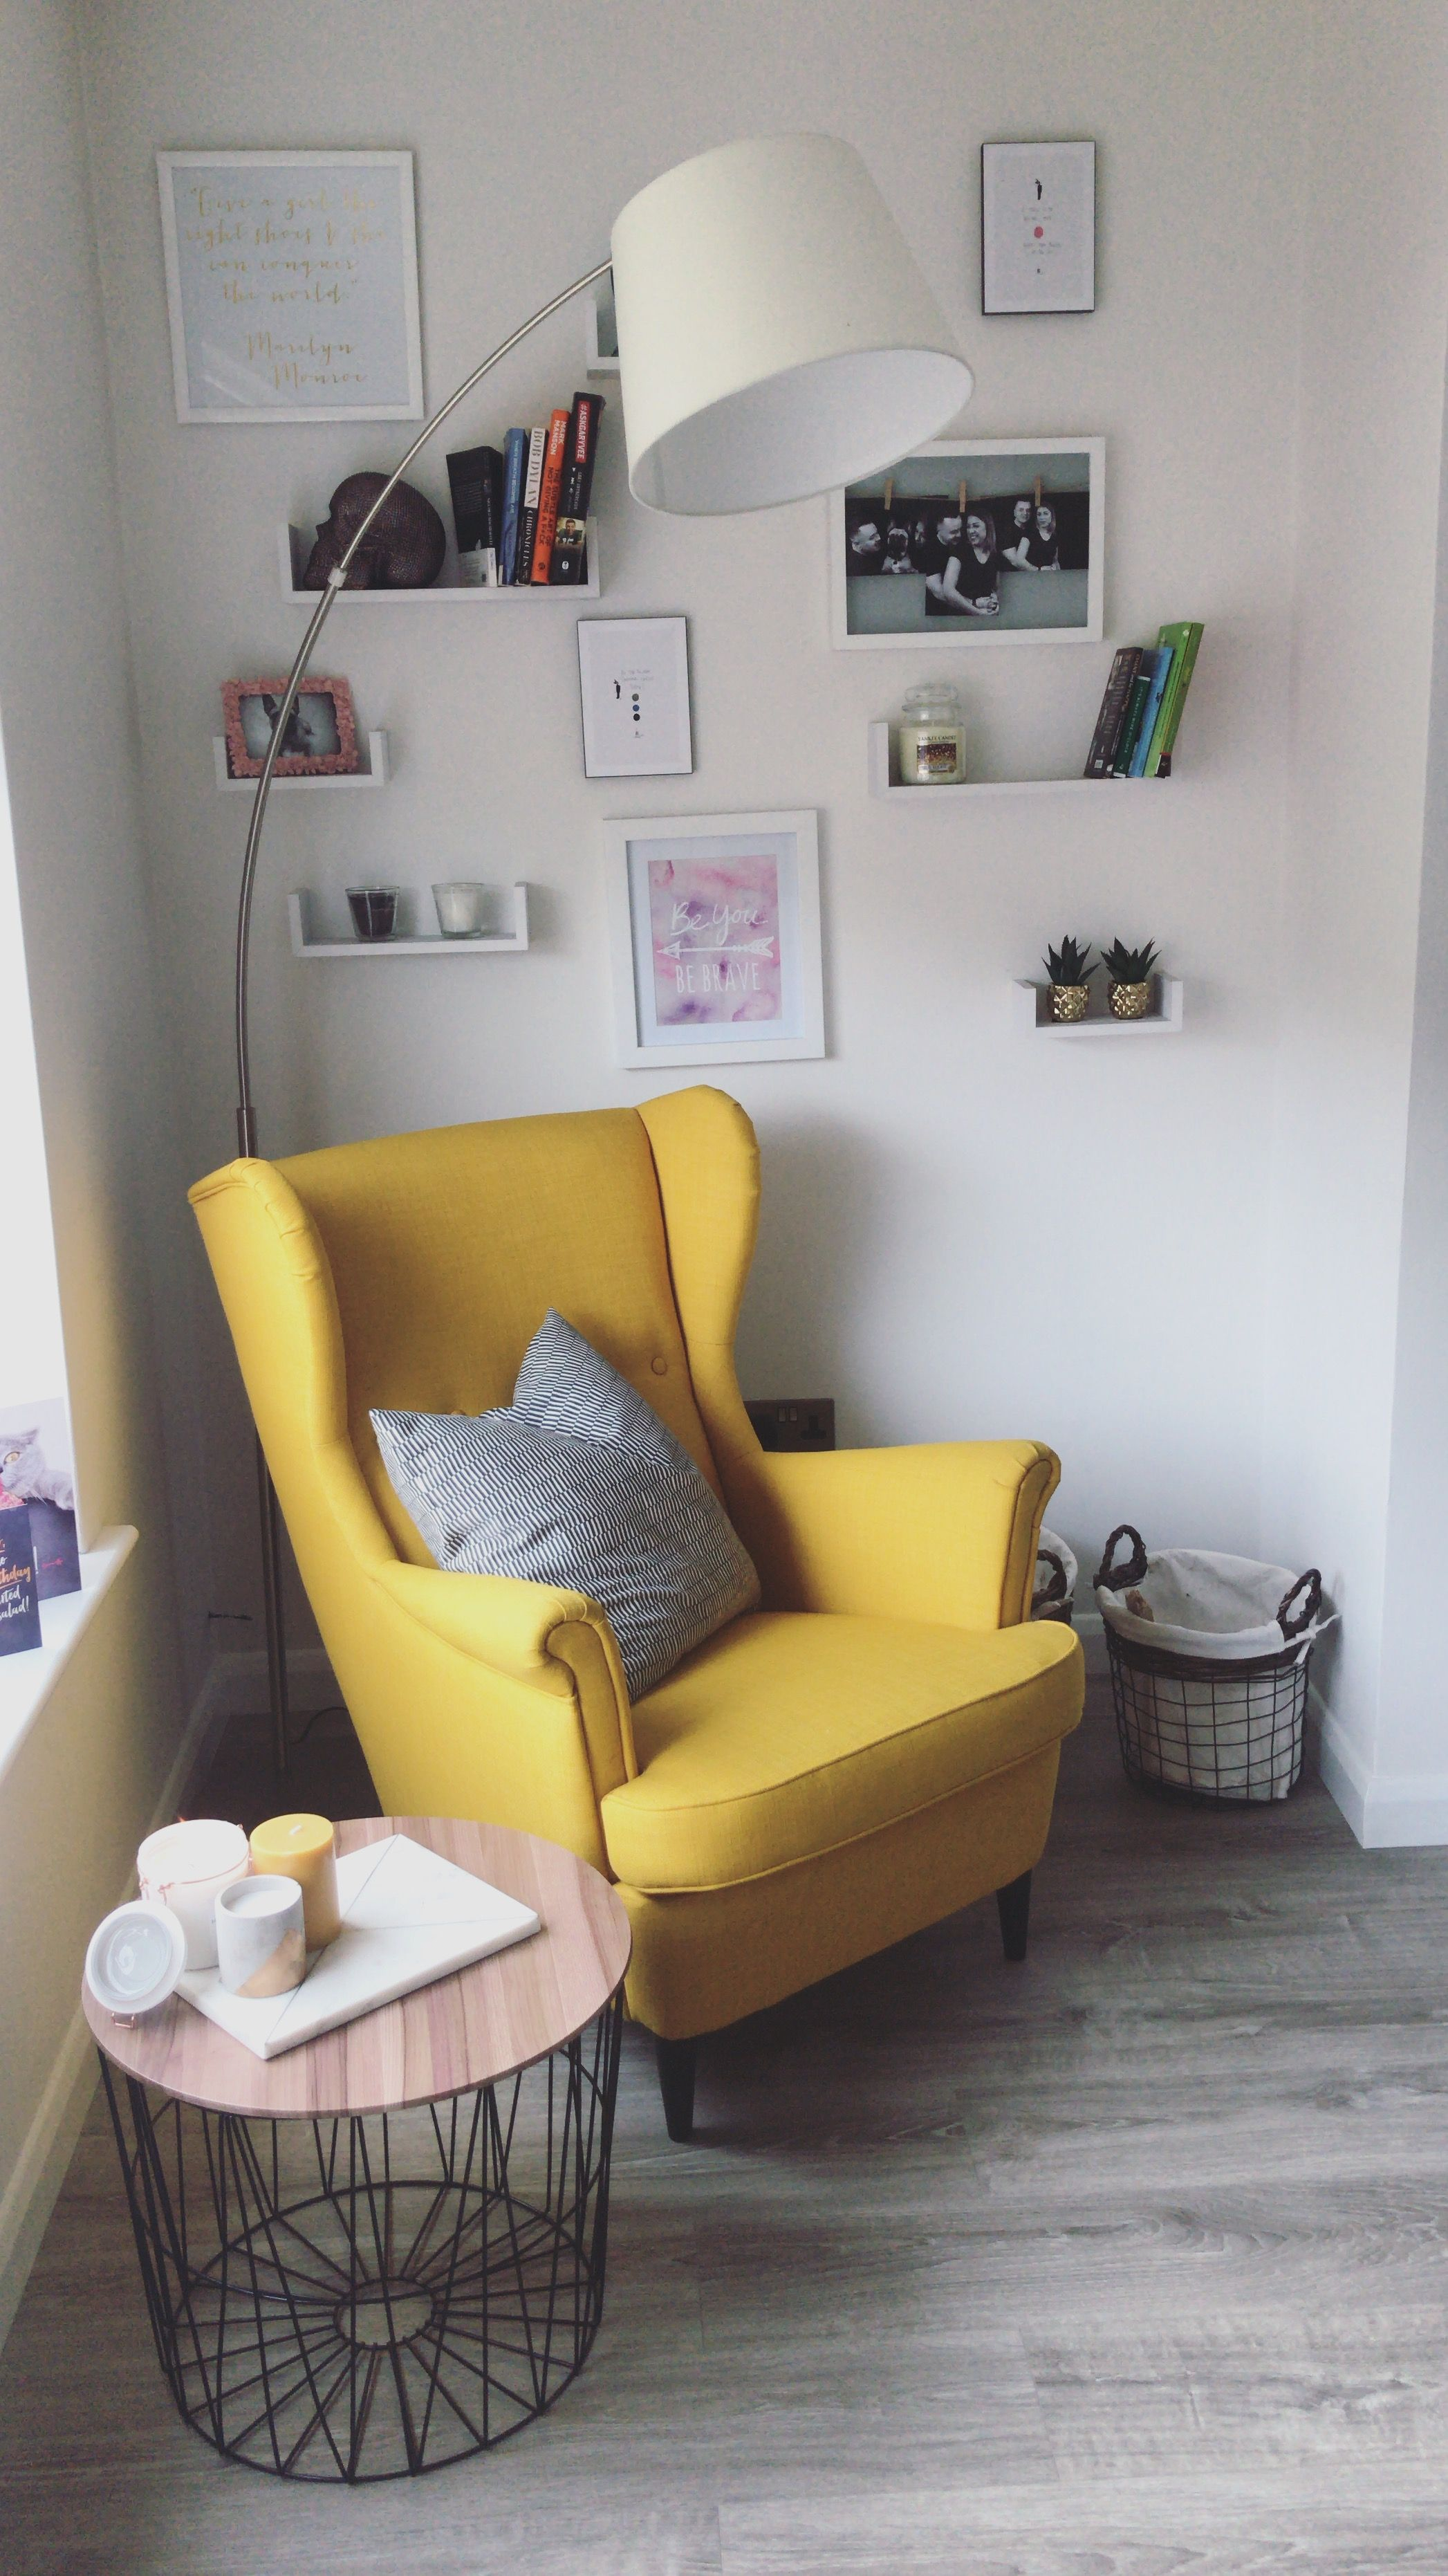 Mustard Yellow Chair Living Room Decor Apartment Home Decor Home